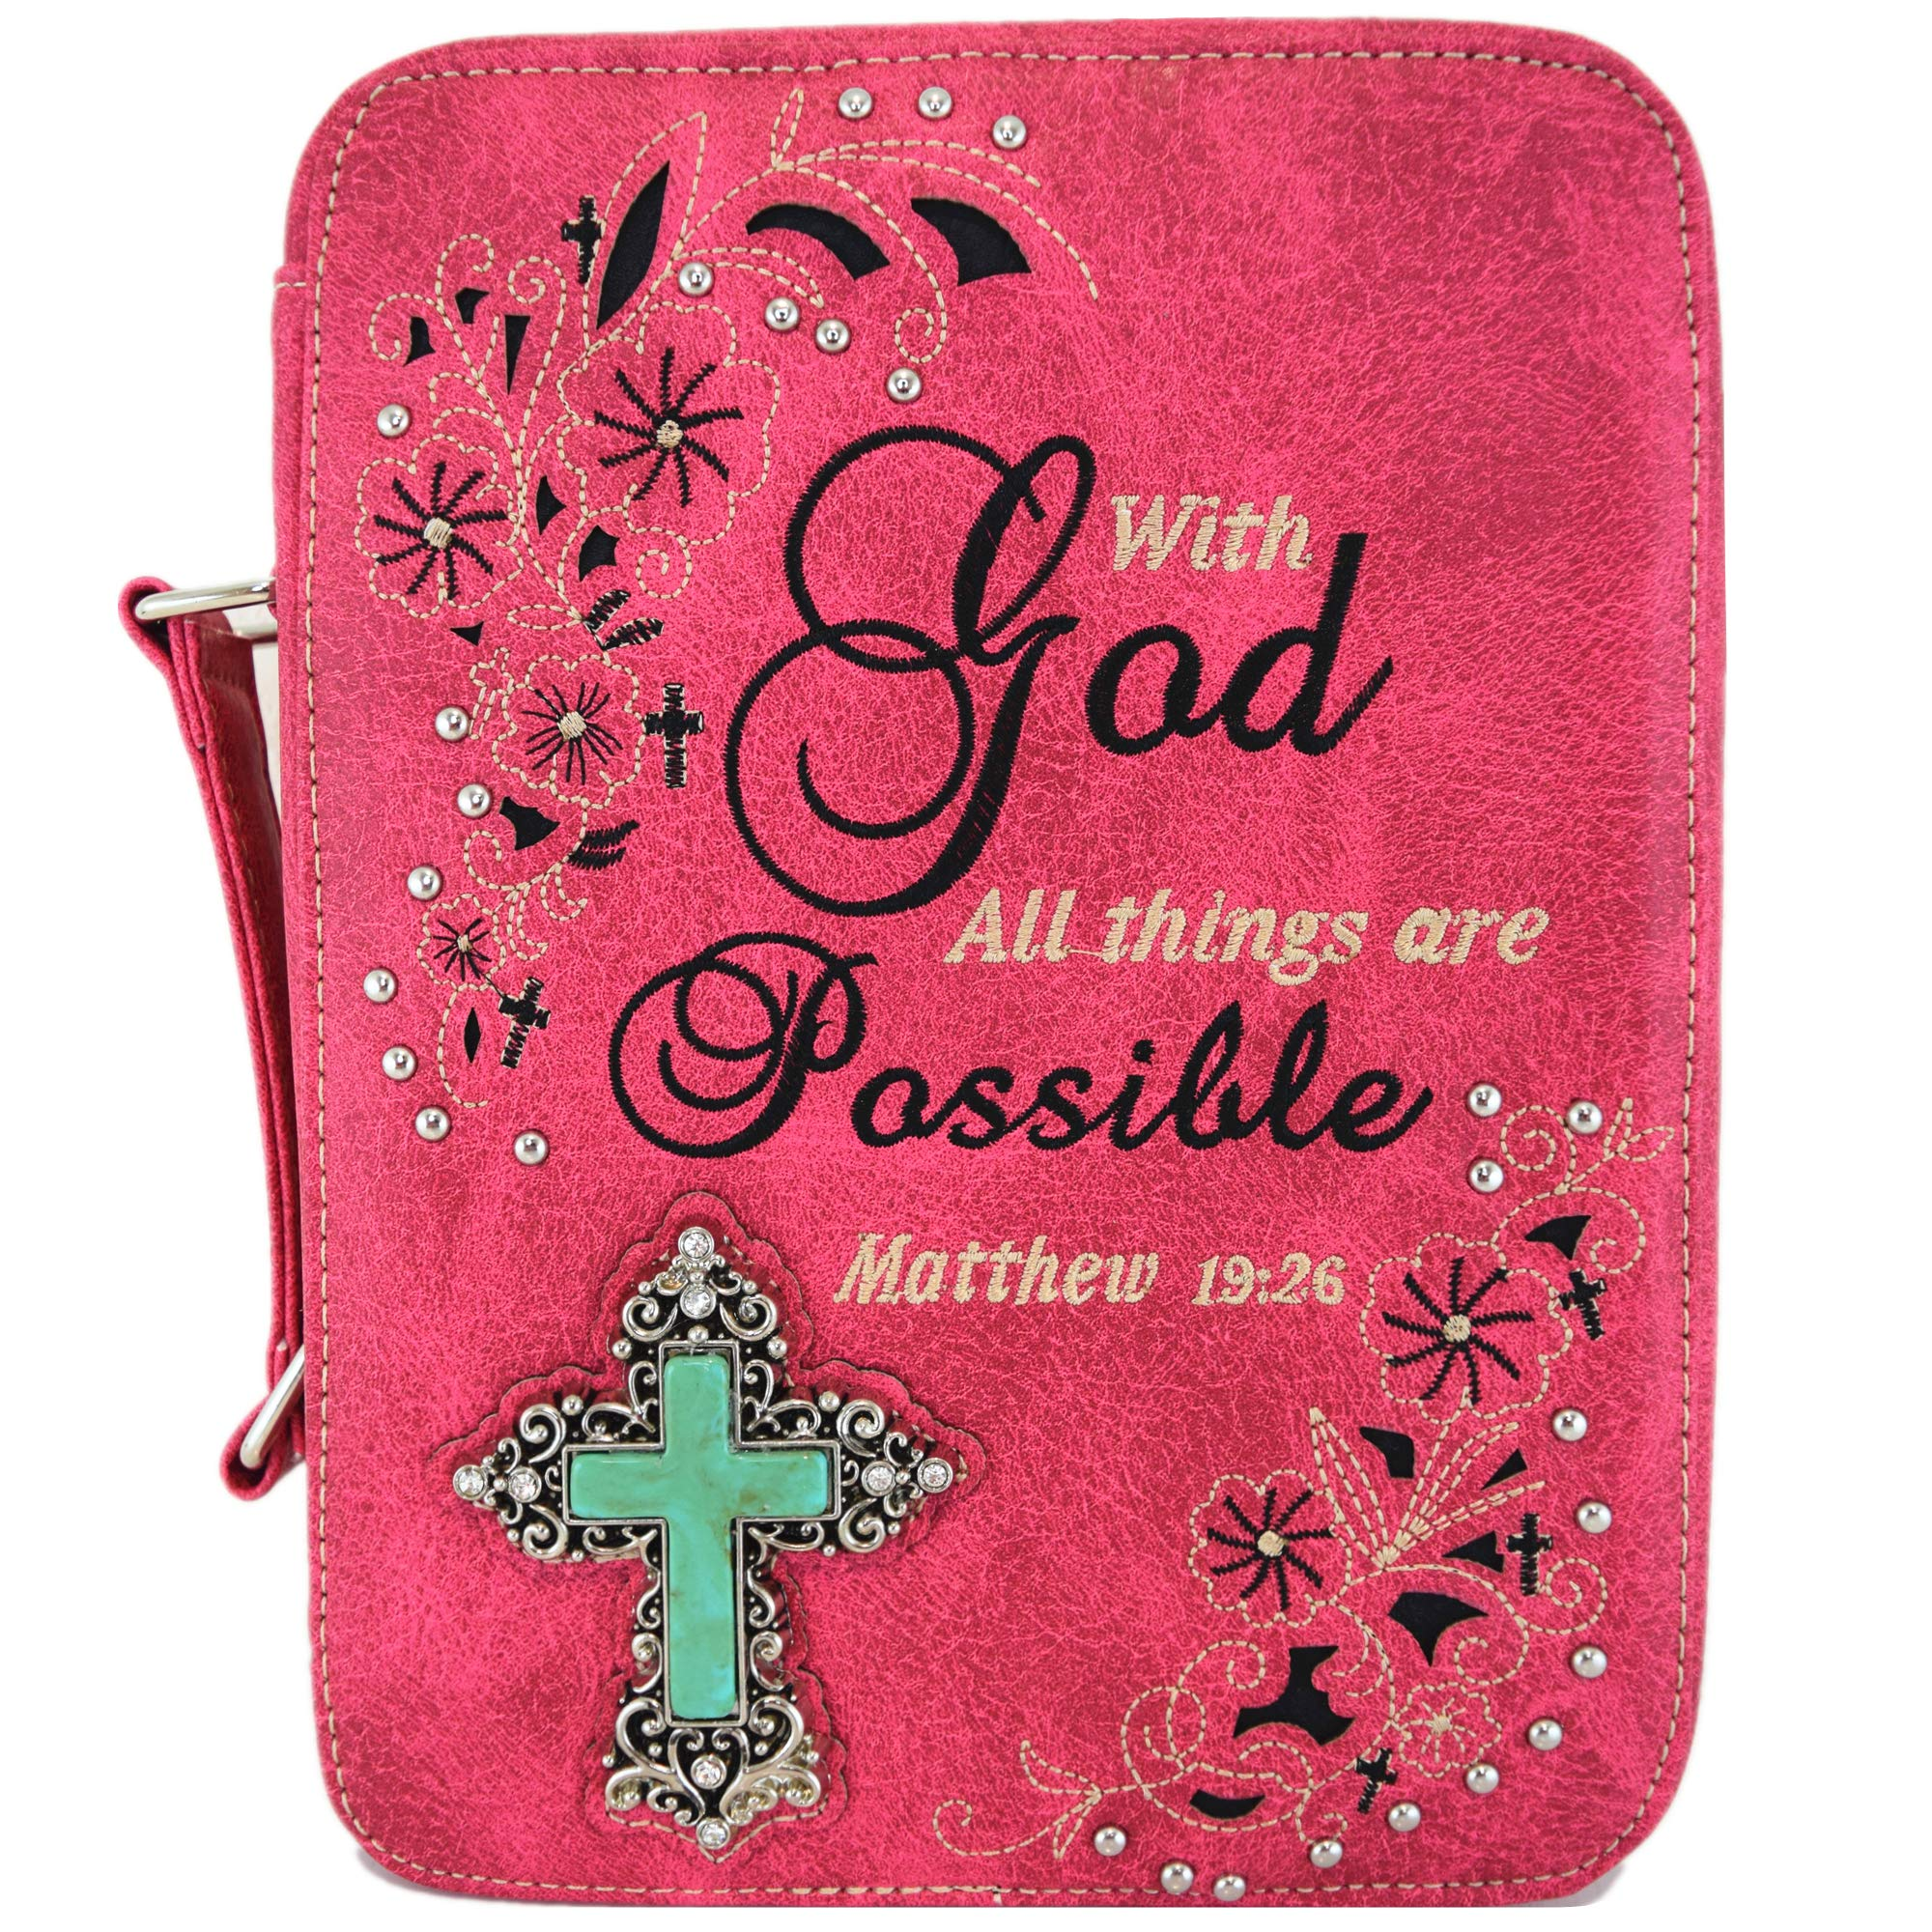 Western Style Bling Rhinestone Cross Country Women's Bible Cover Books Case Removable Strap Messenger Bag (Scriptures Fuchsia) by Western